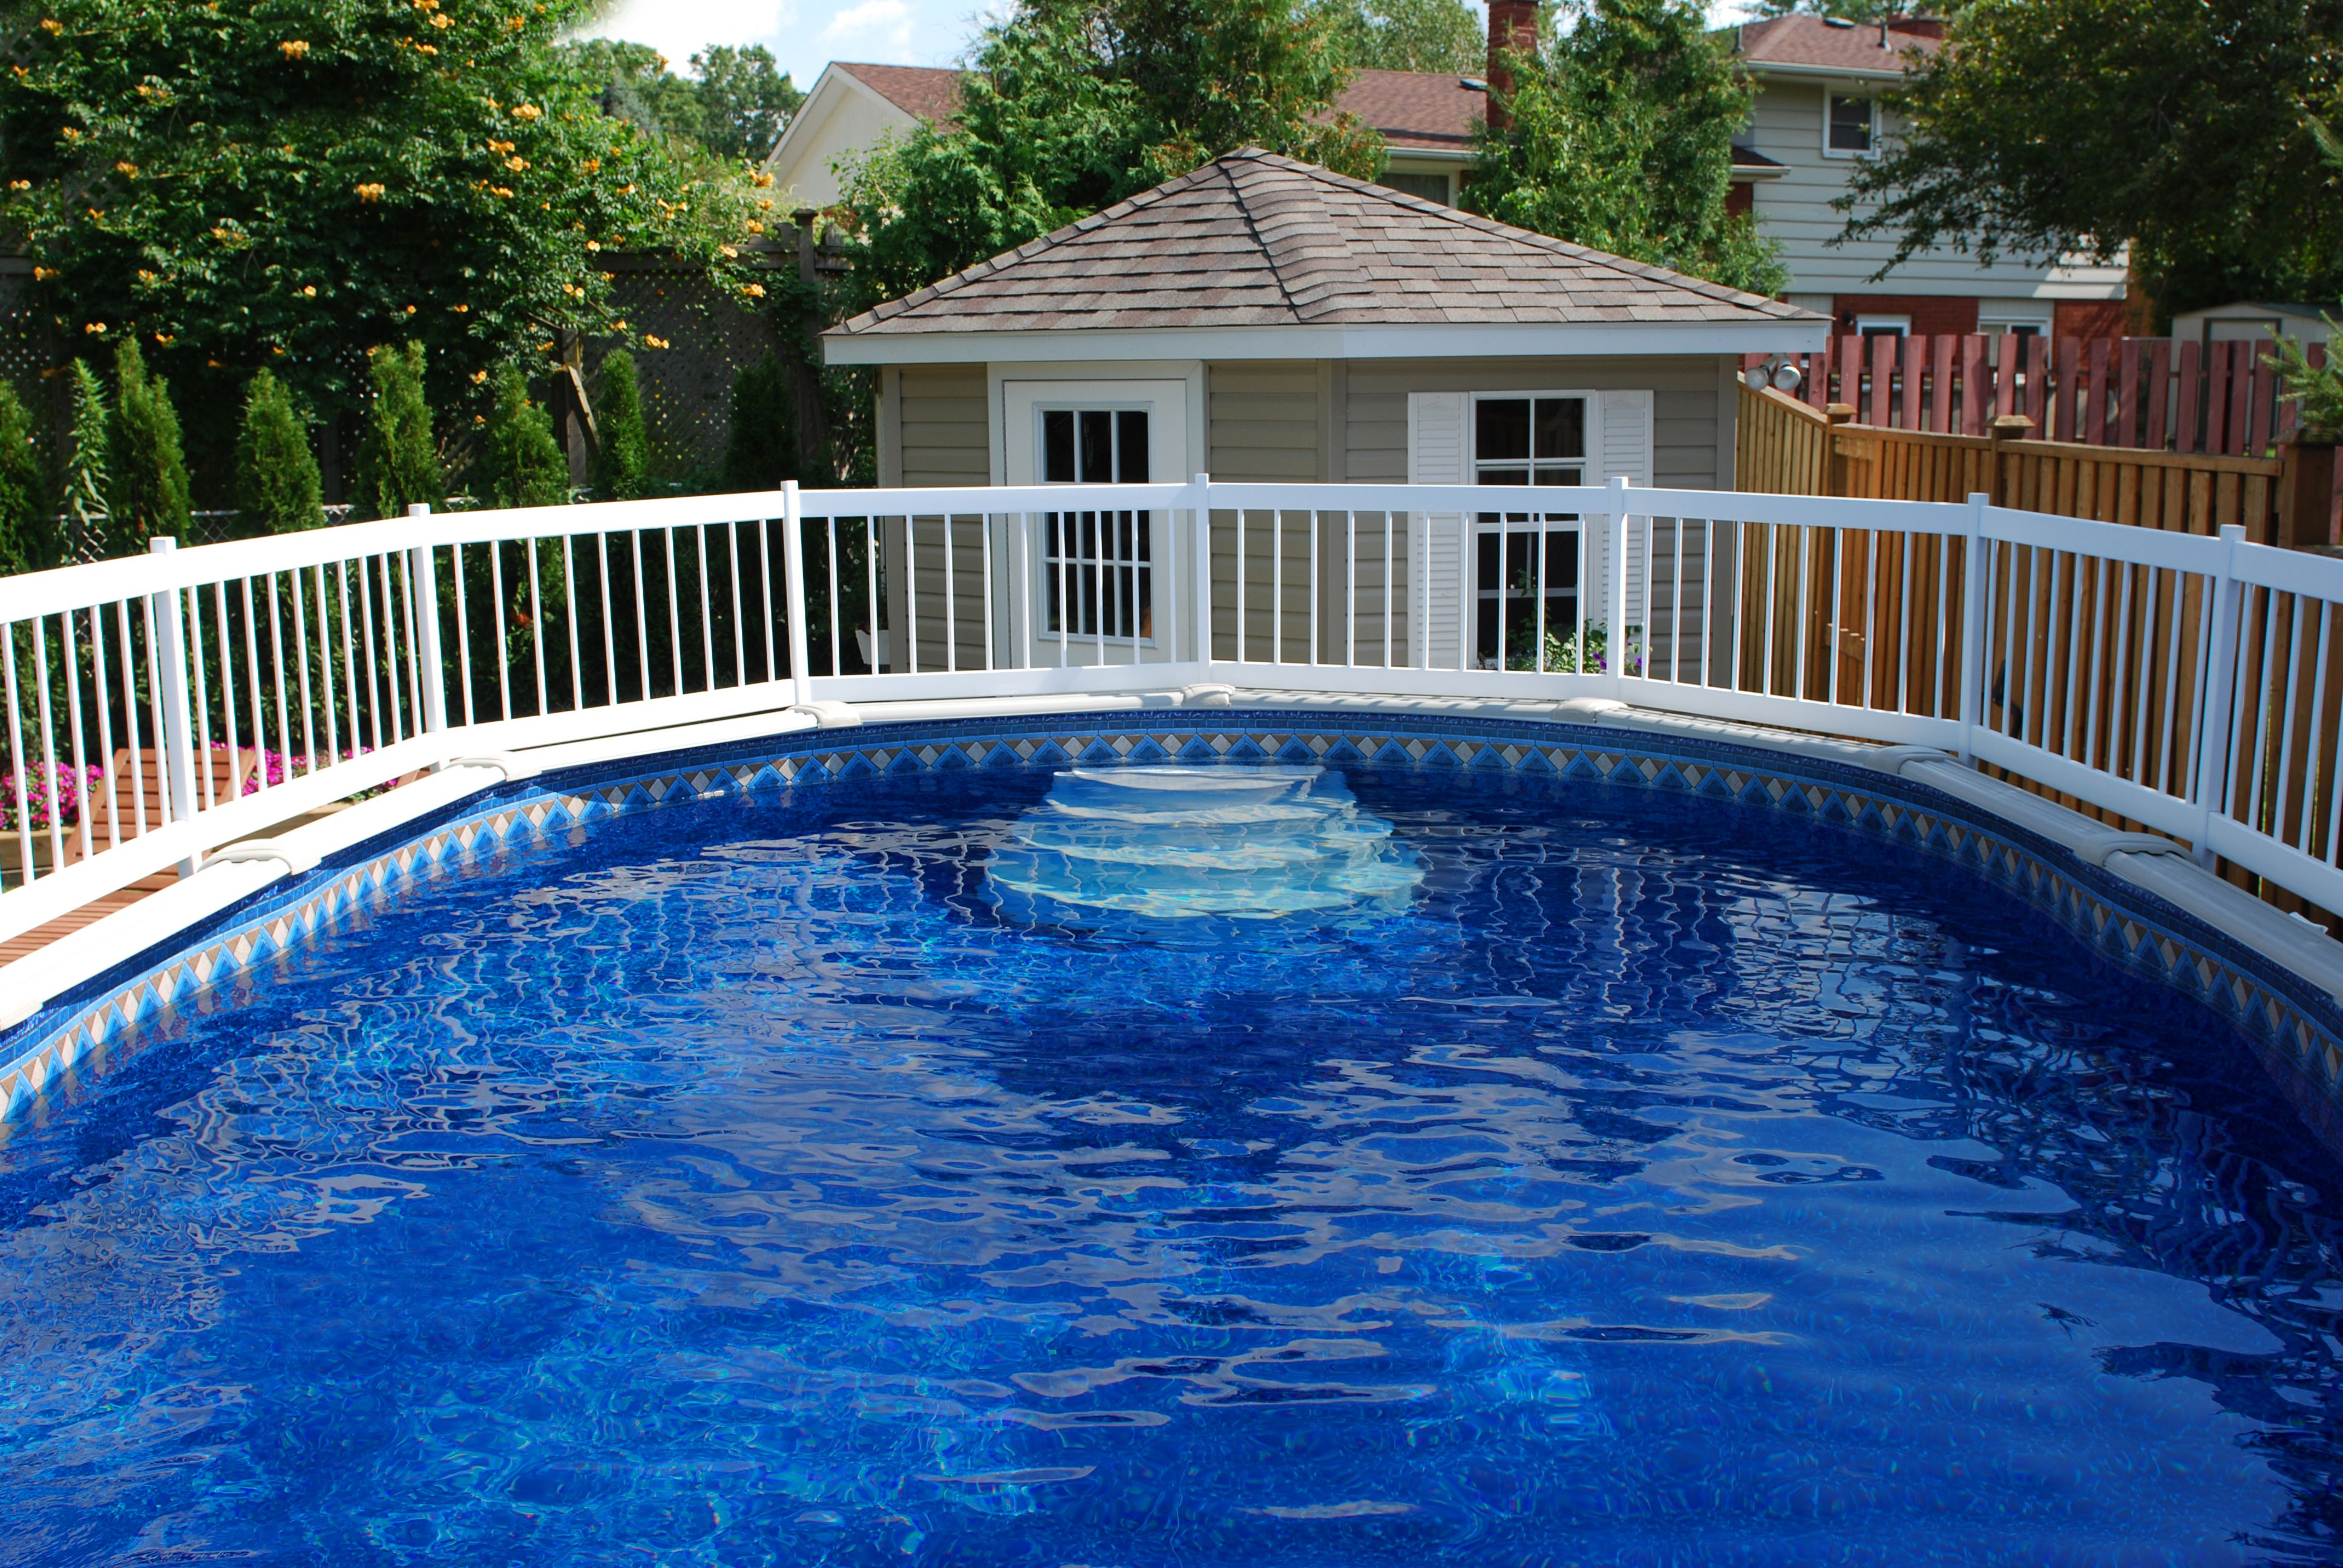 New Aboveground Pool Models And Accessories Pools Aboveground